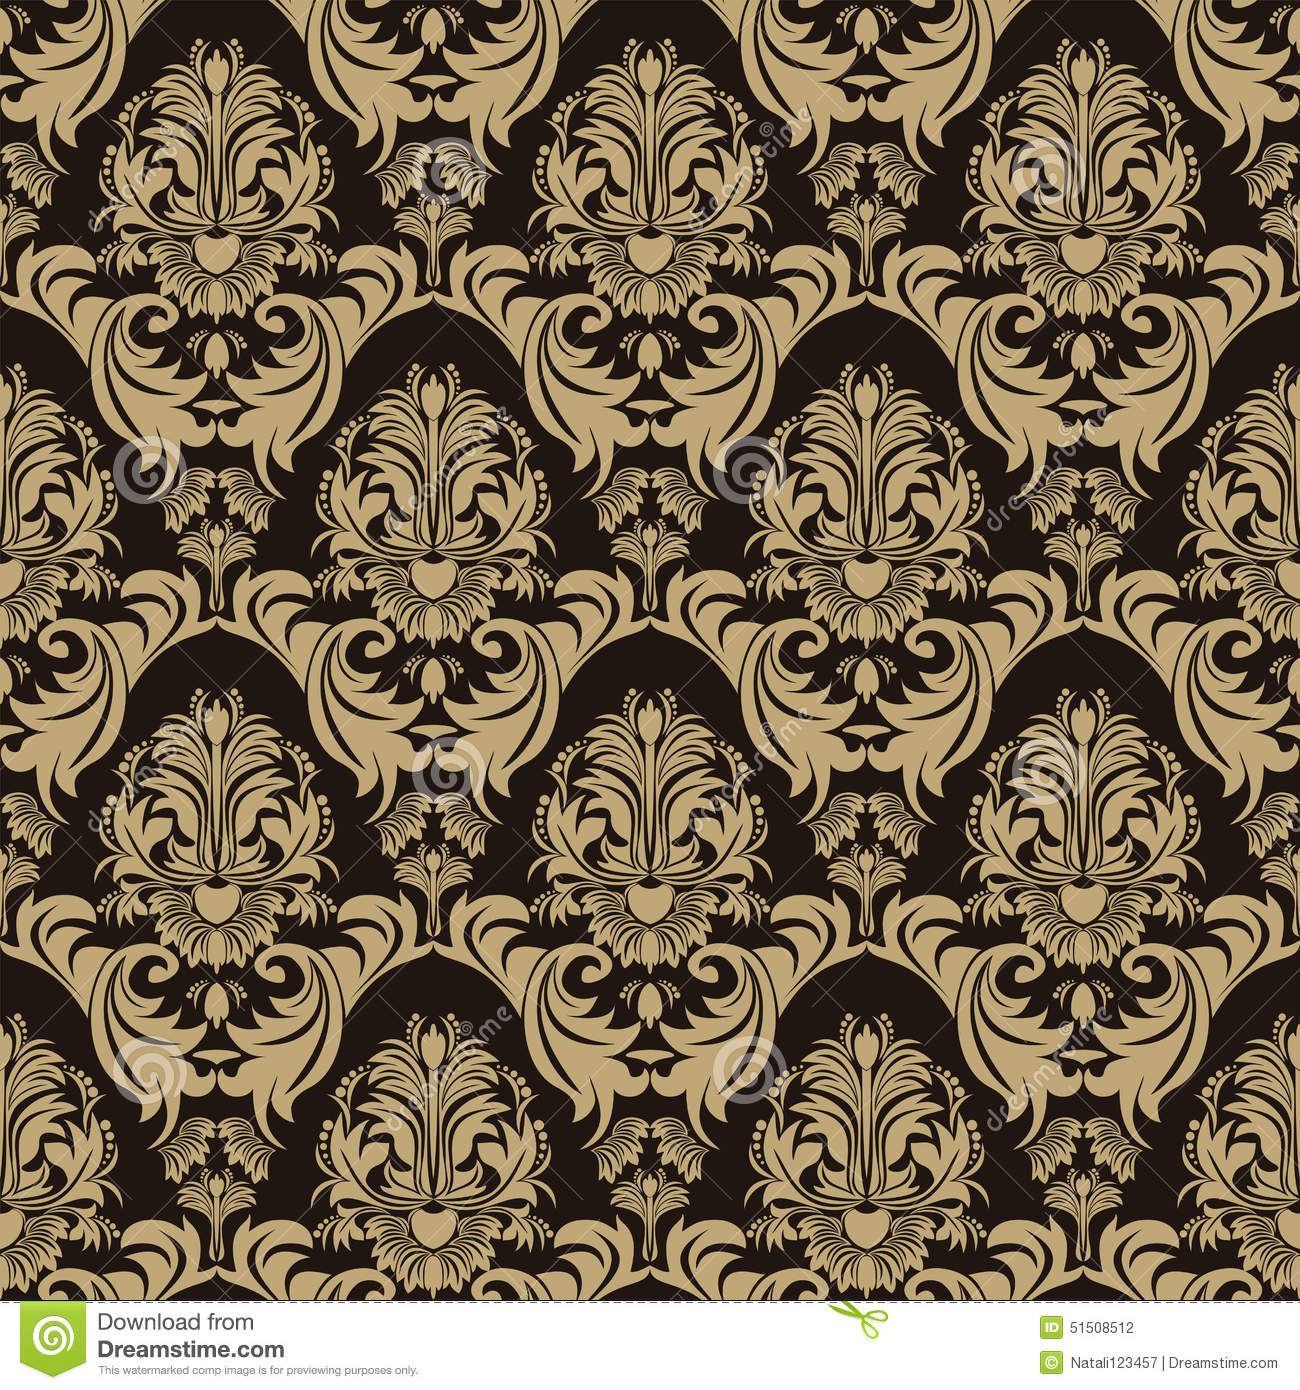 Seamless ornate floral Pattern on the chocolate Background